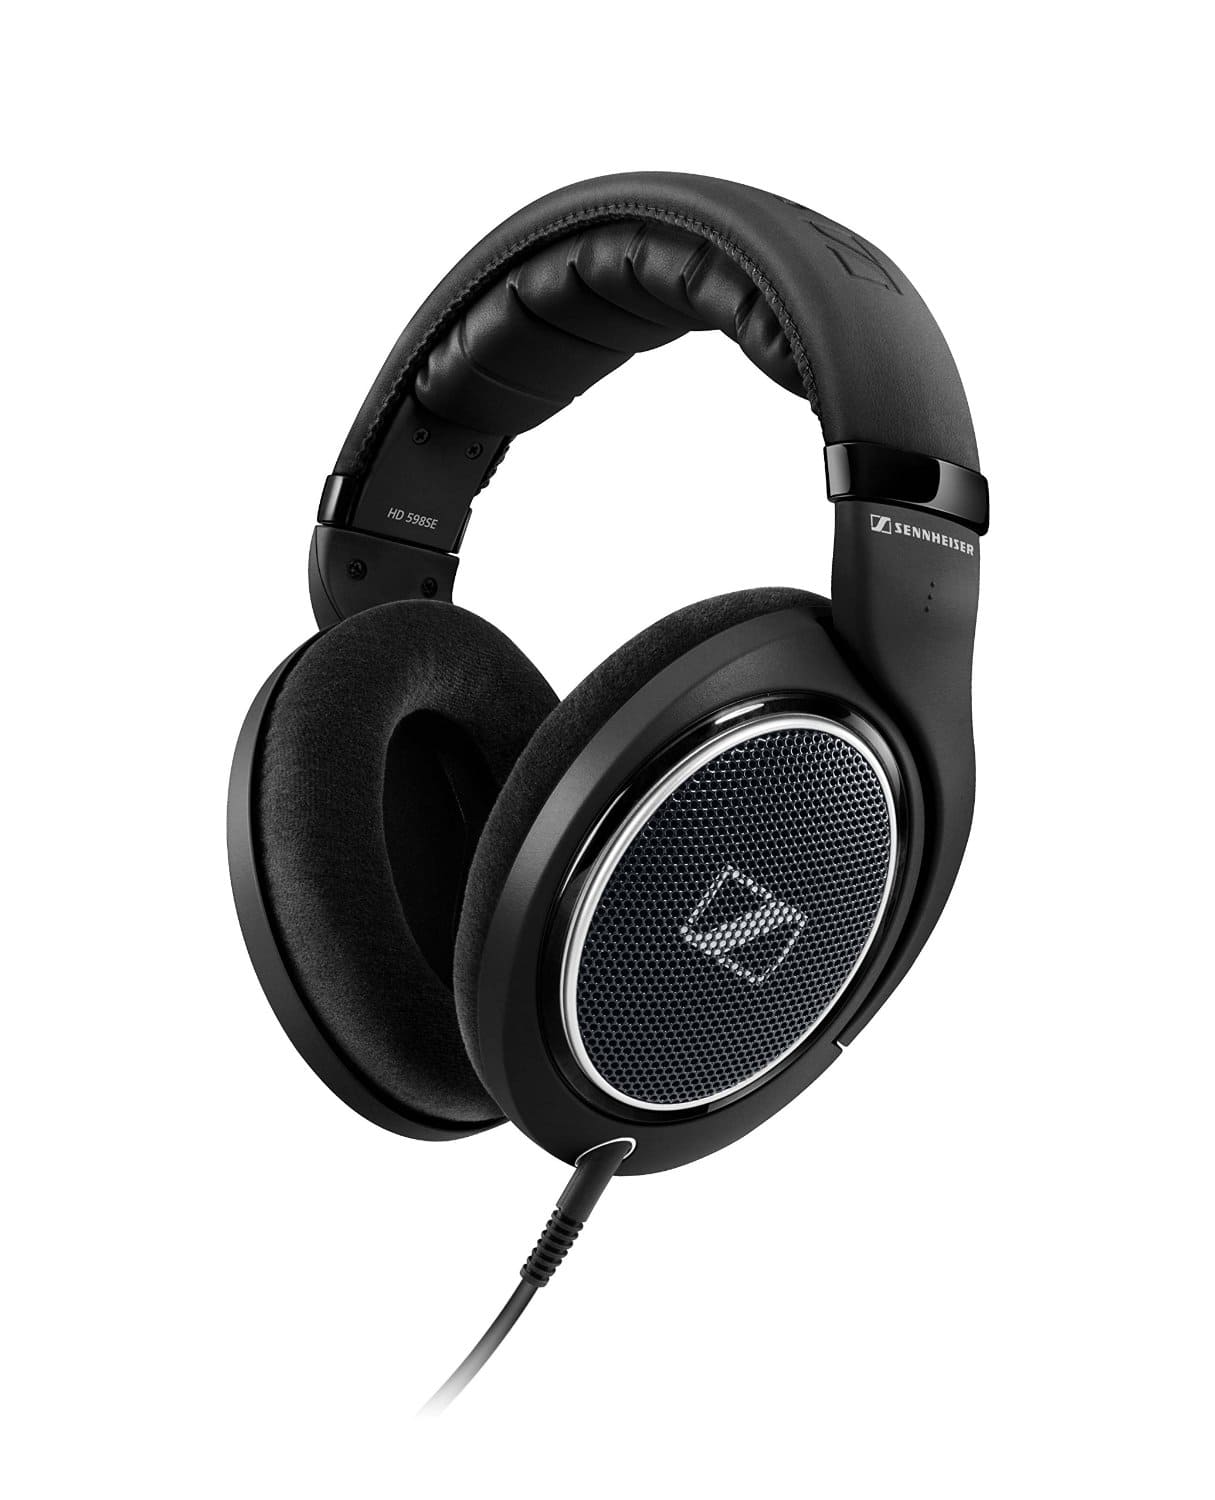 Sennheiser HD 598 Special Edition Over-Ear Headphones - Black for $123 Shipped from Amazon.com